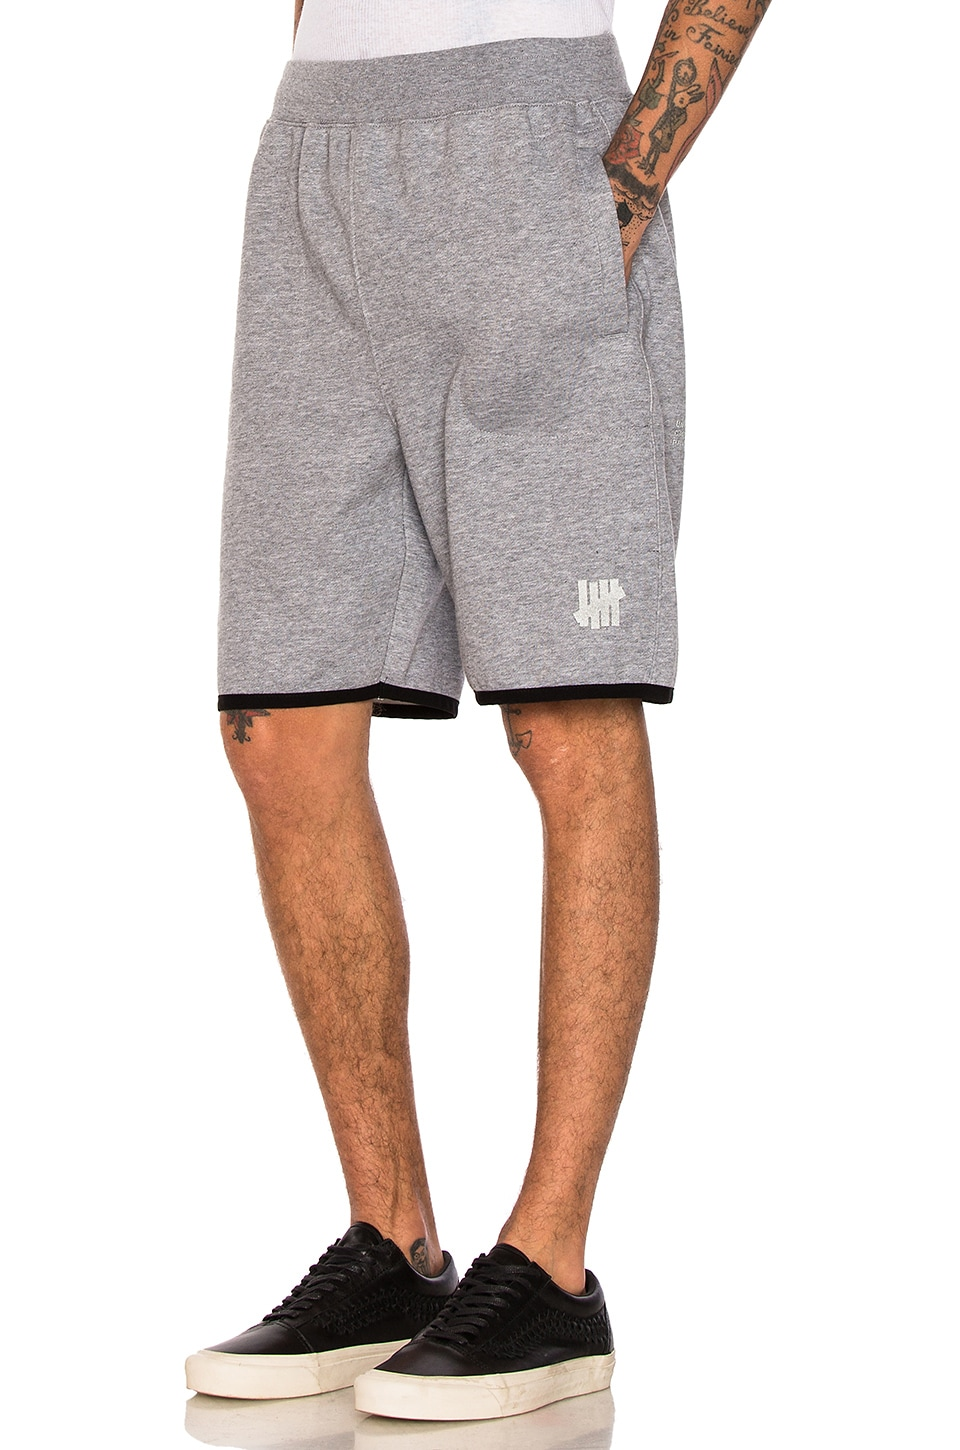 Tech Fleece Short by Undefeated